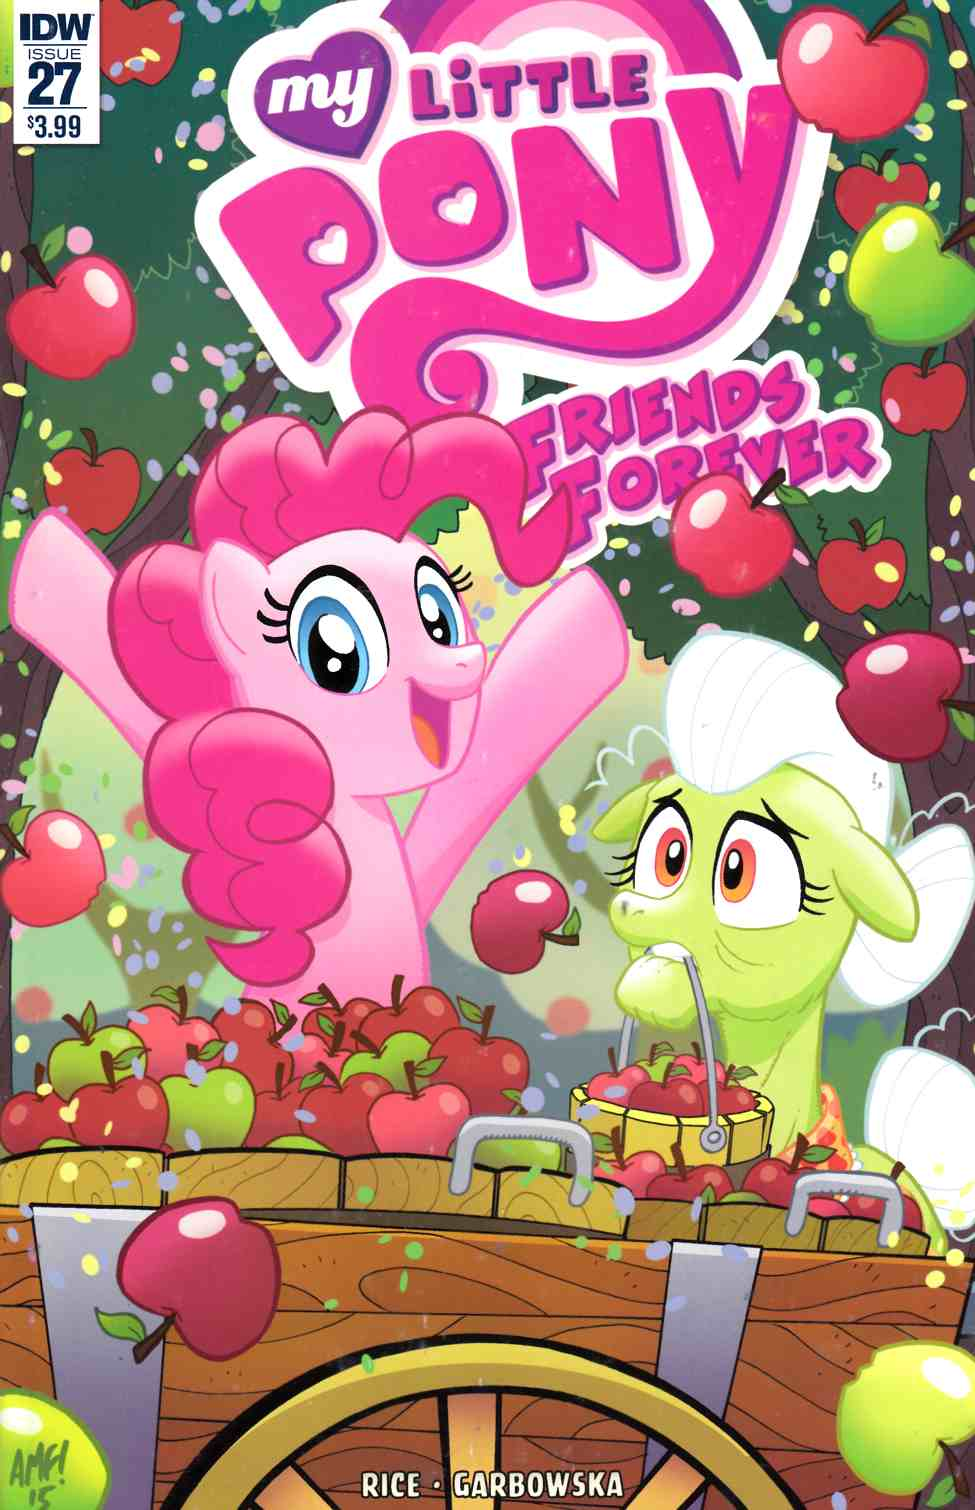 My Little Pony Friends Forever #27 [IDW Comic] LARGE